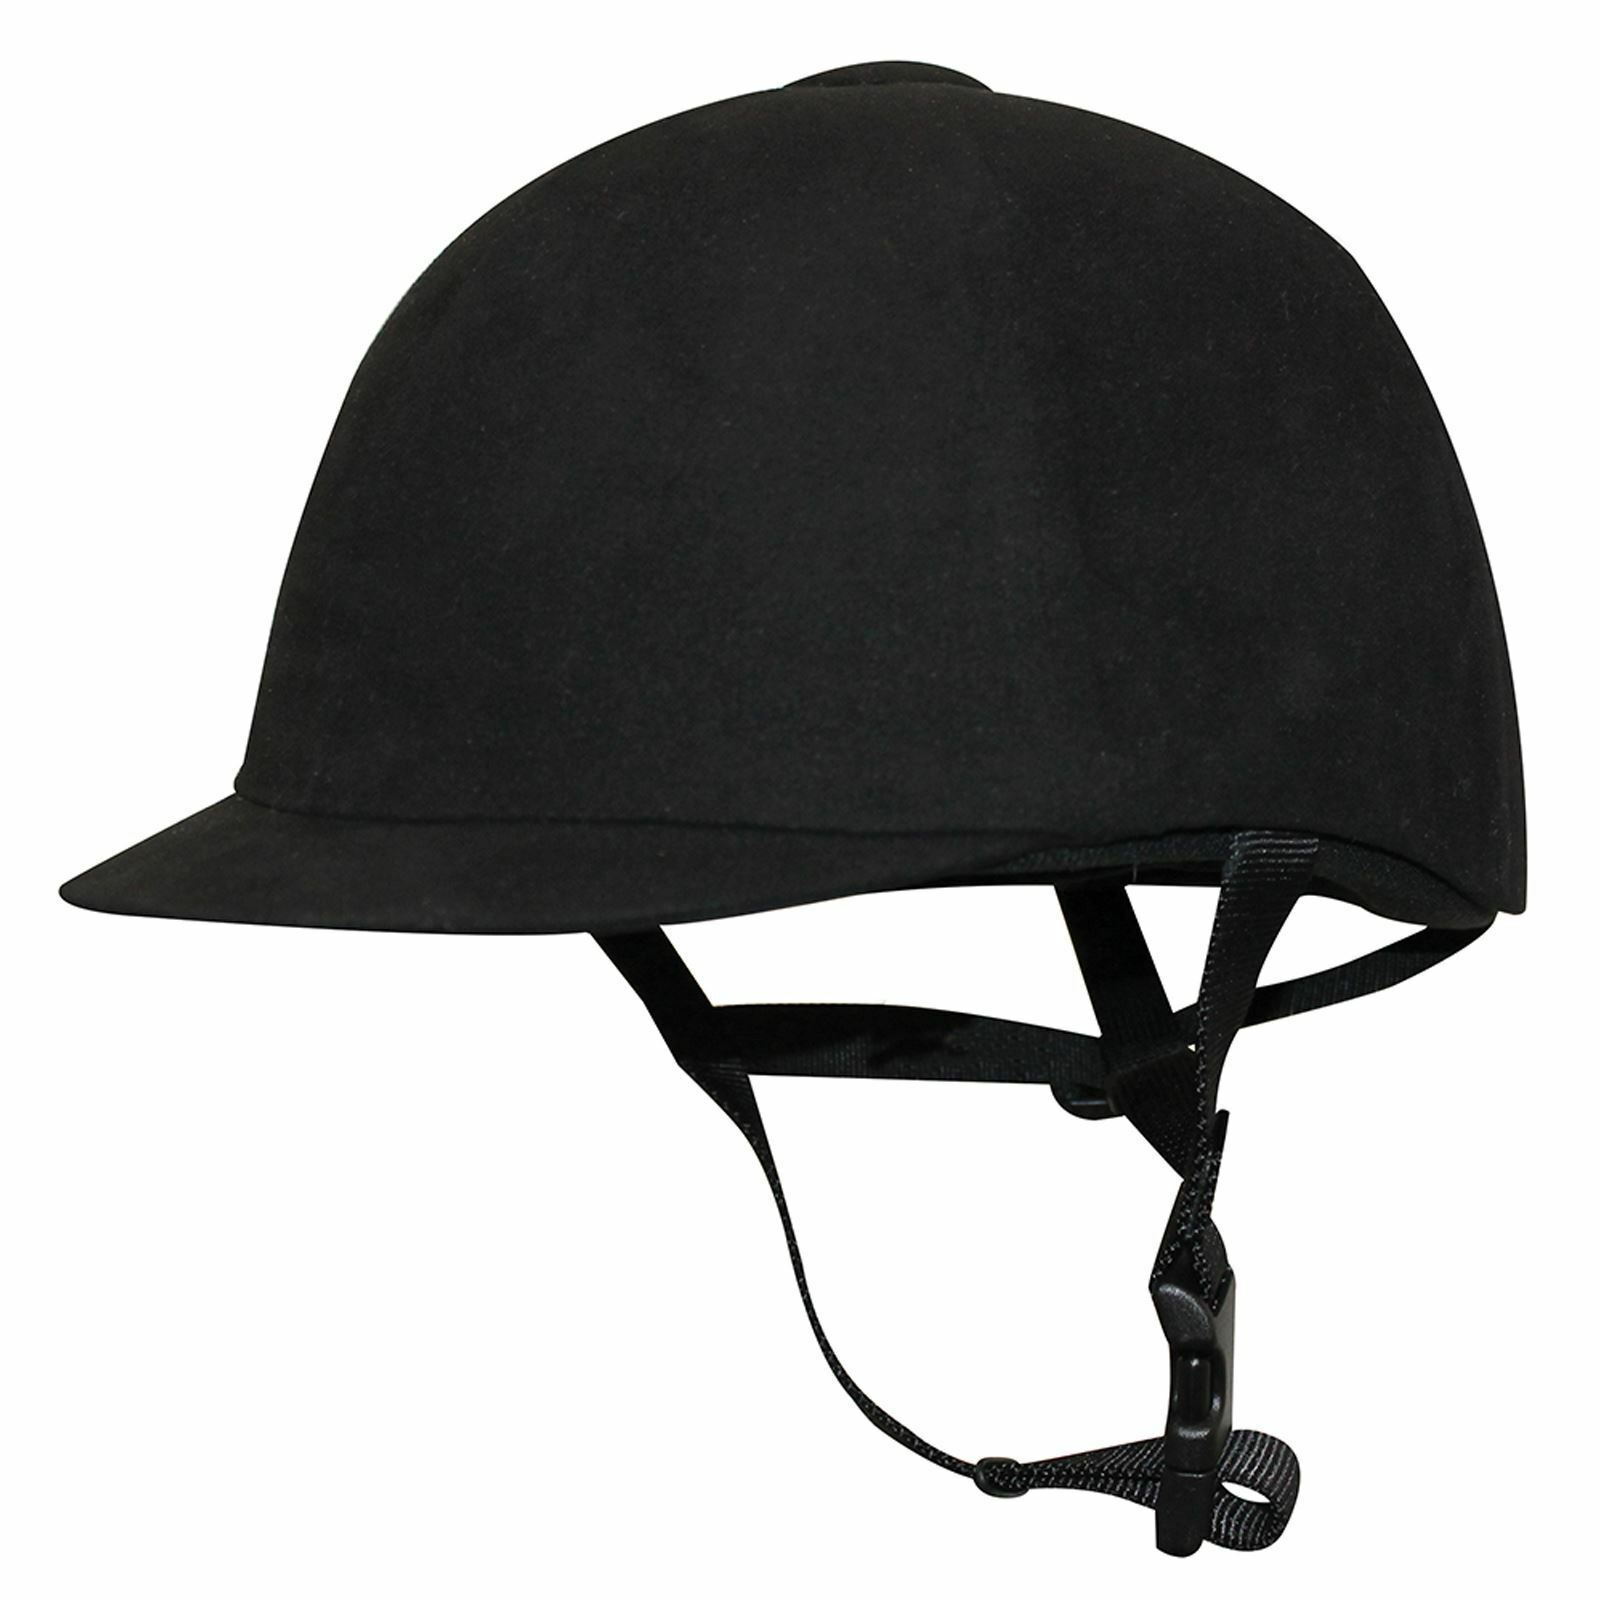 Harry Hall Equine Junior Pas015 Lightweight Breathable Breathable Breathable Safety Horse Riding Hat d52033